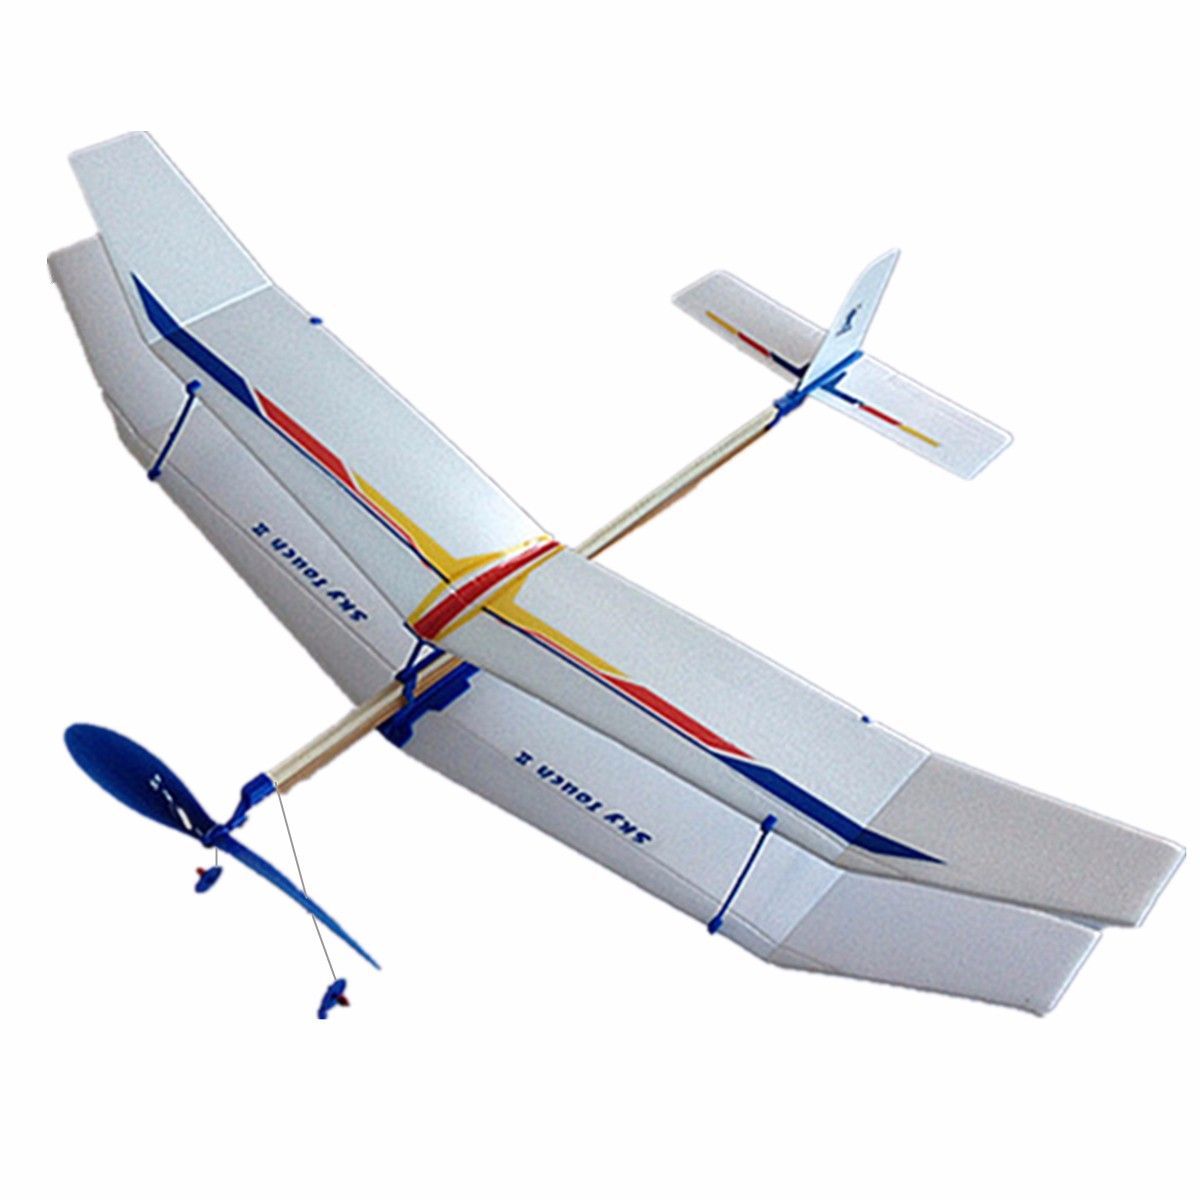 3PCS DIY Glider Rubber Elastic Powered Flying Plane Airplane Fun Model Kids Toy Boy's Science Educational Toys Assembly Plane(China (Mainland))